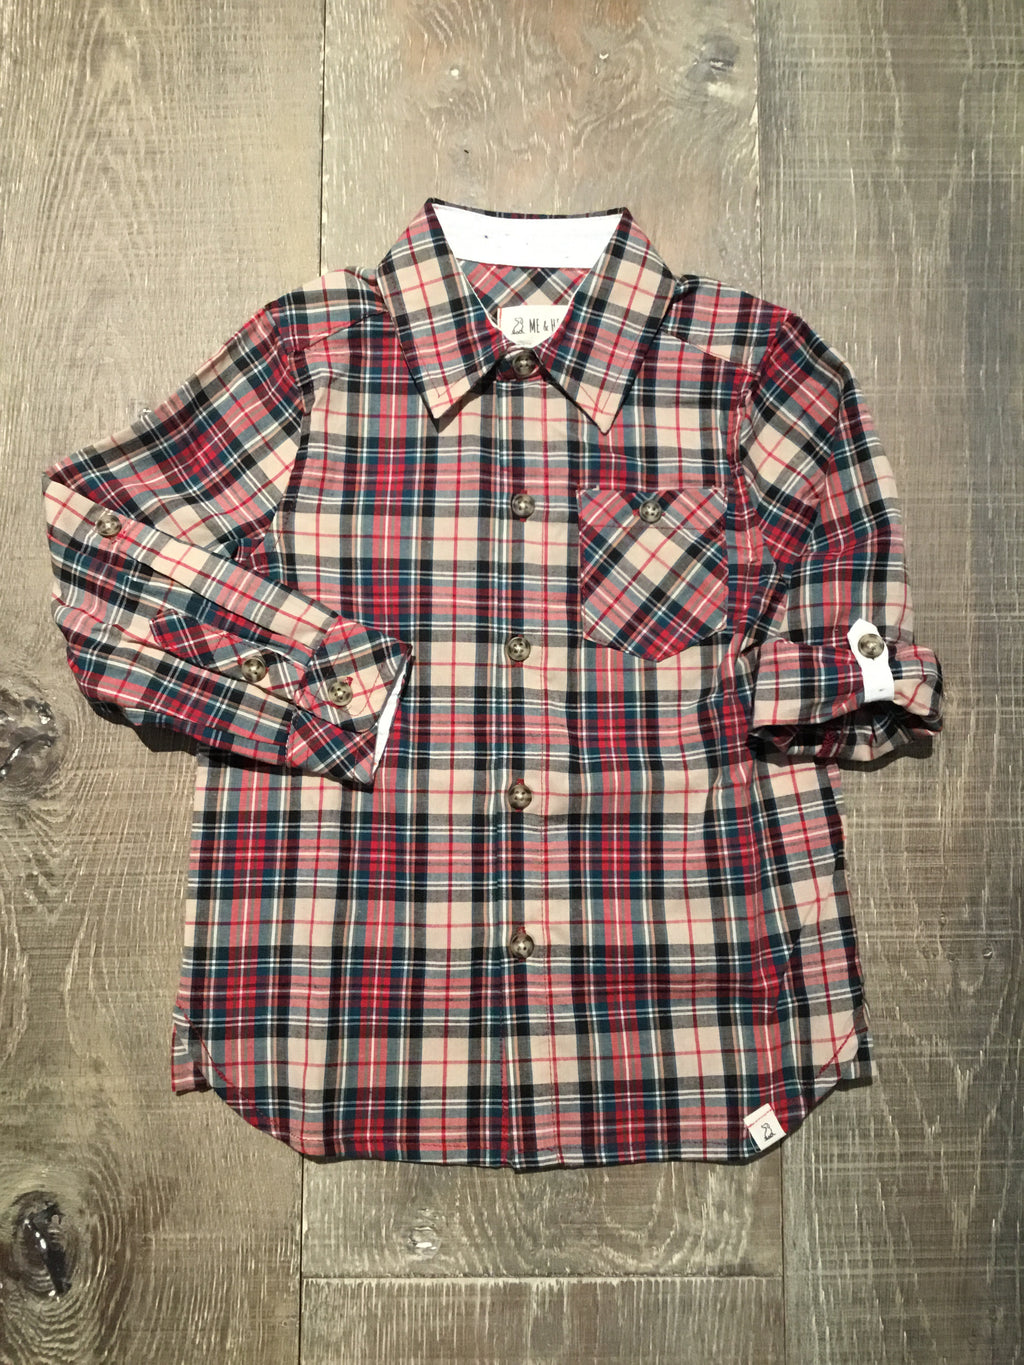 Green & Red Plaid Long Sleeve Shirt